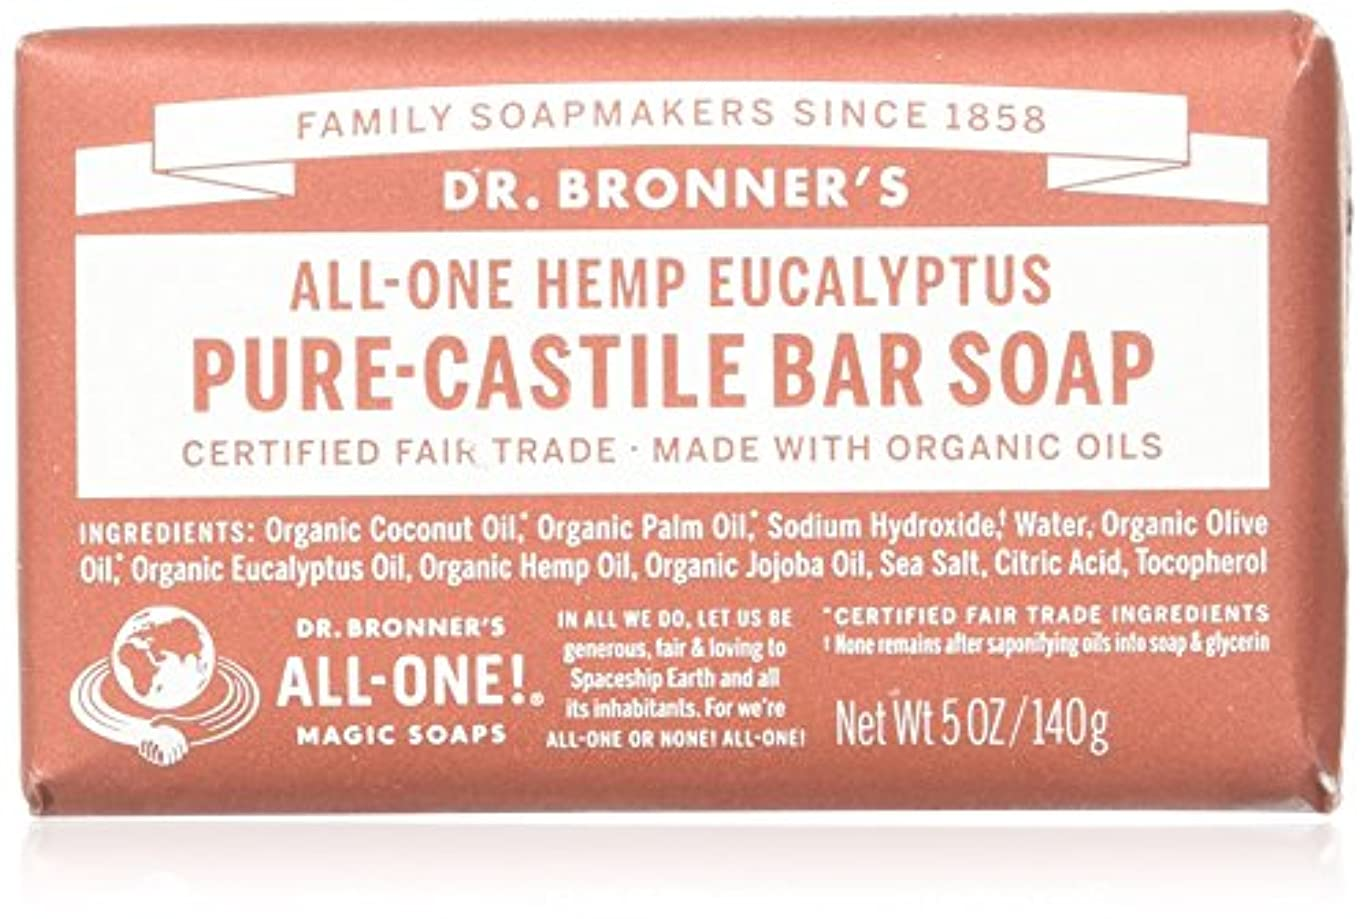 森林浴計算Dr. Bronner's Eucalyptus Bar Soap Made with Organic Ingredients 141 g by Dr. Bronner's [並行輸入品]